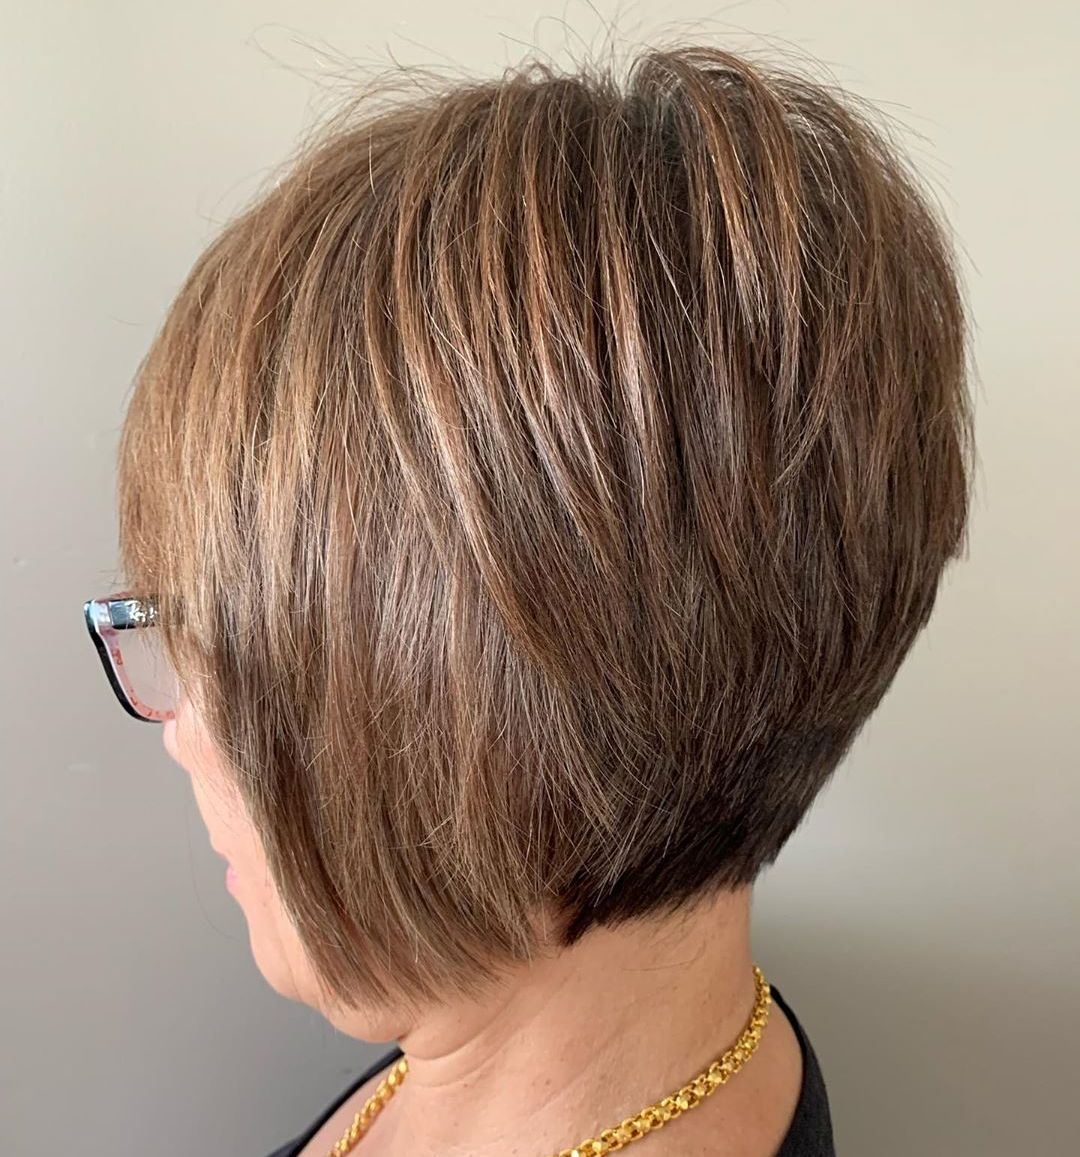 Accurate Pixie Bob for Women Over 50